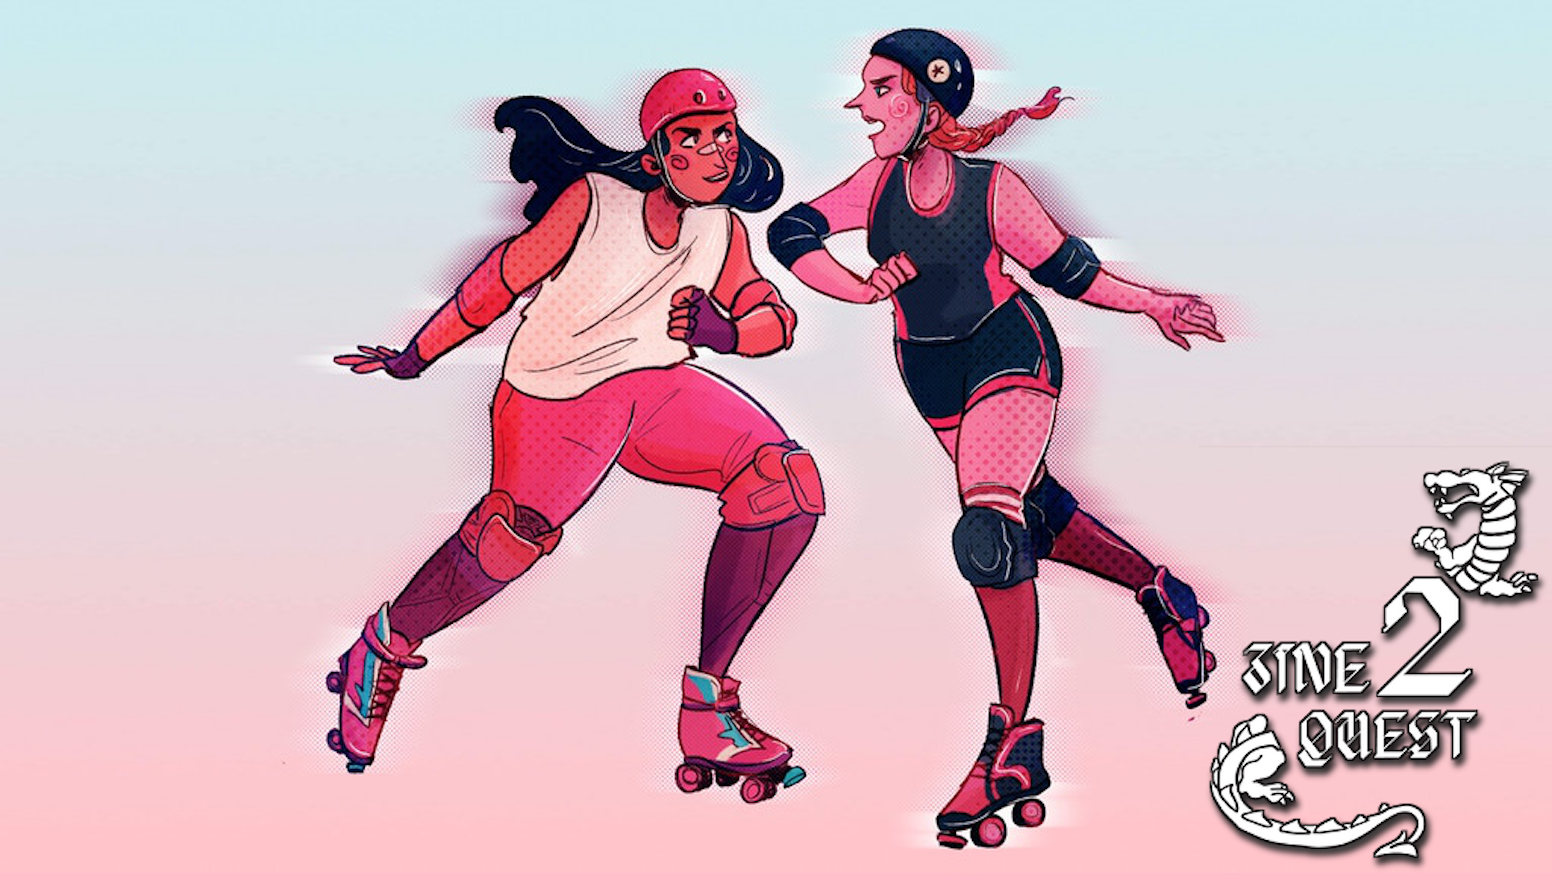 A tabletop role-playing game about the drama and excitement of skating in a roller derby bout.